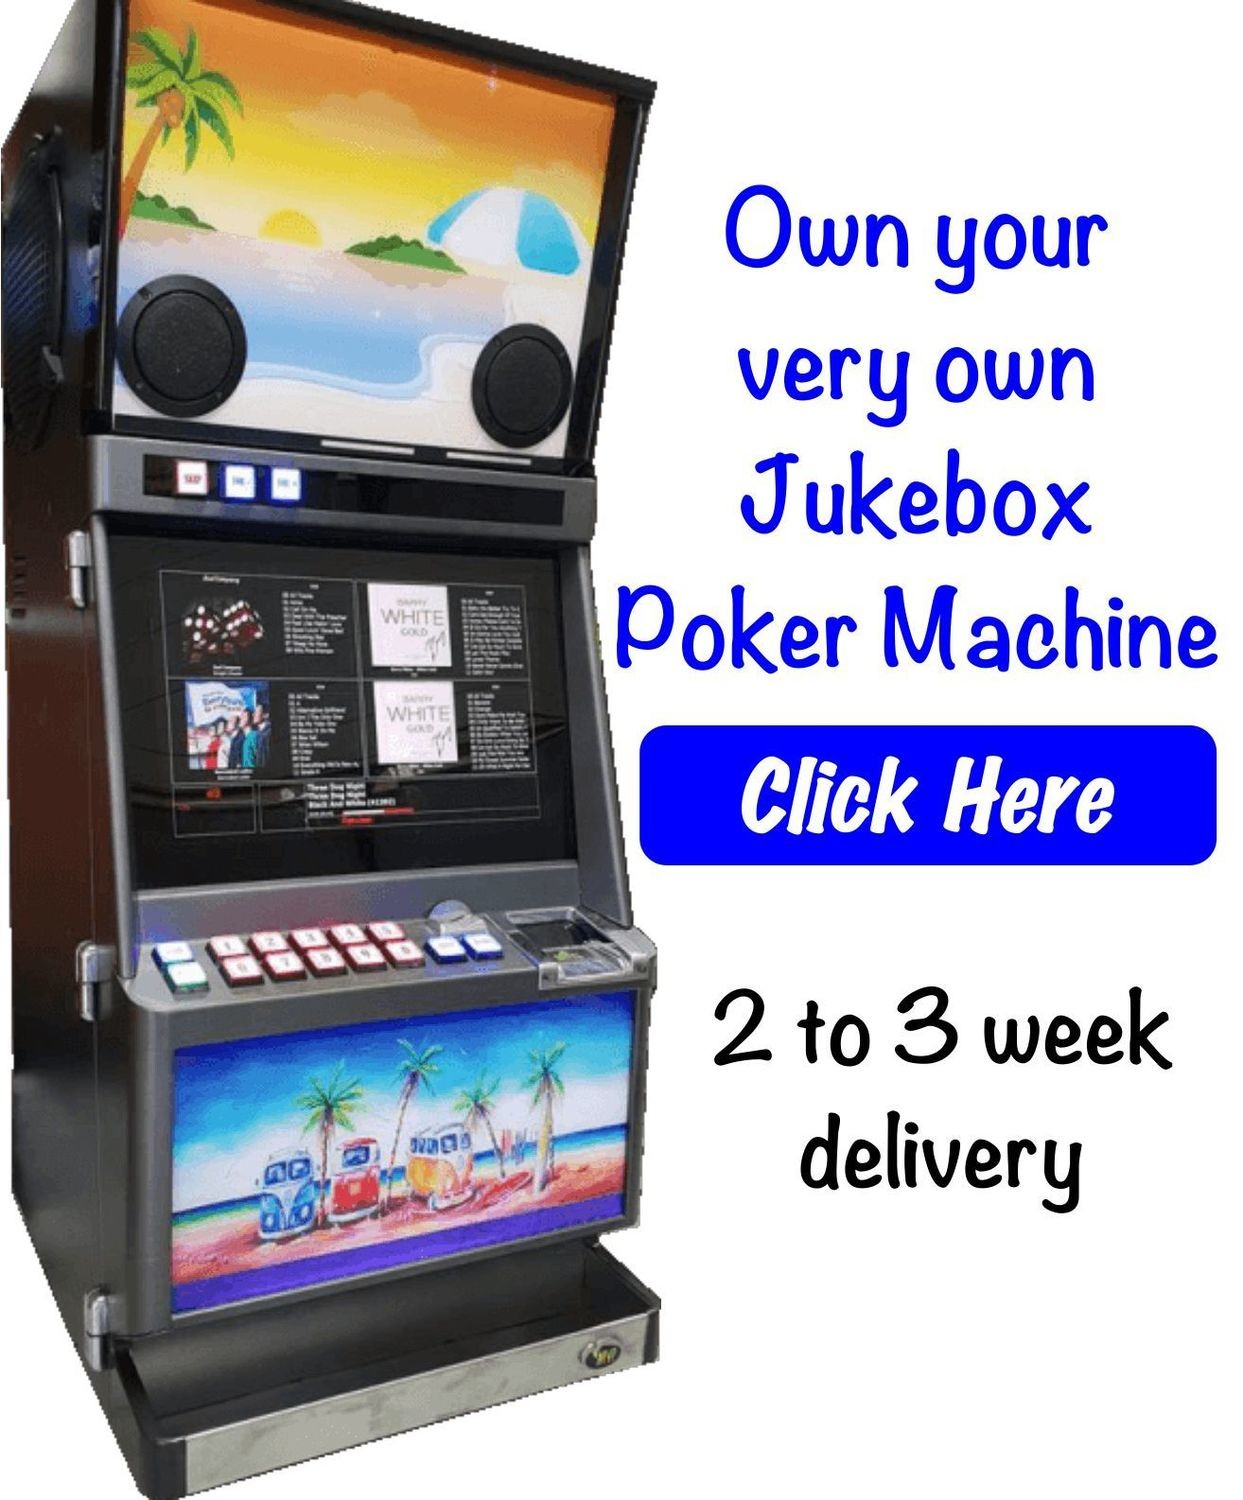 JukeBox Poker Machine